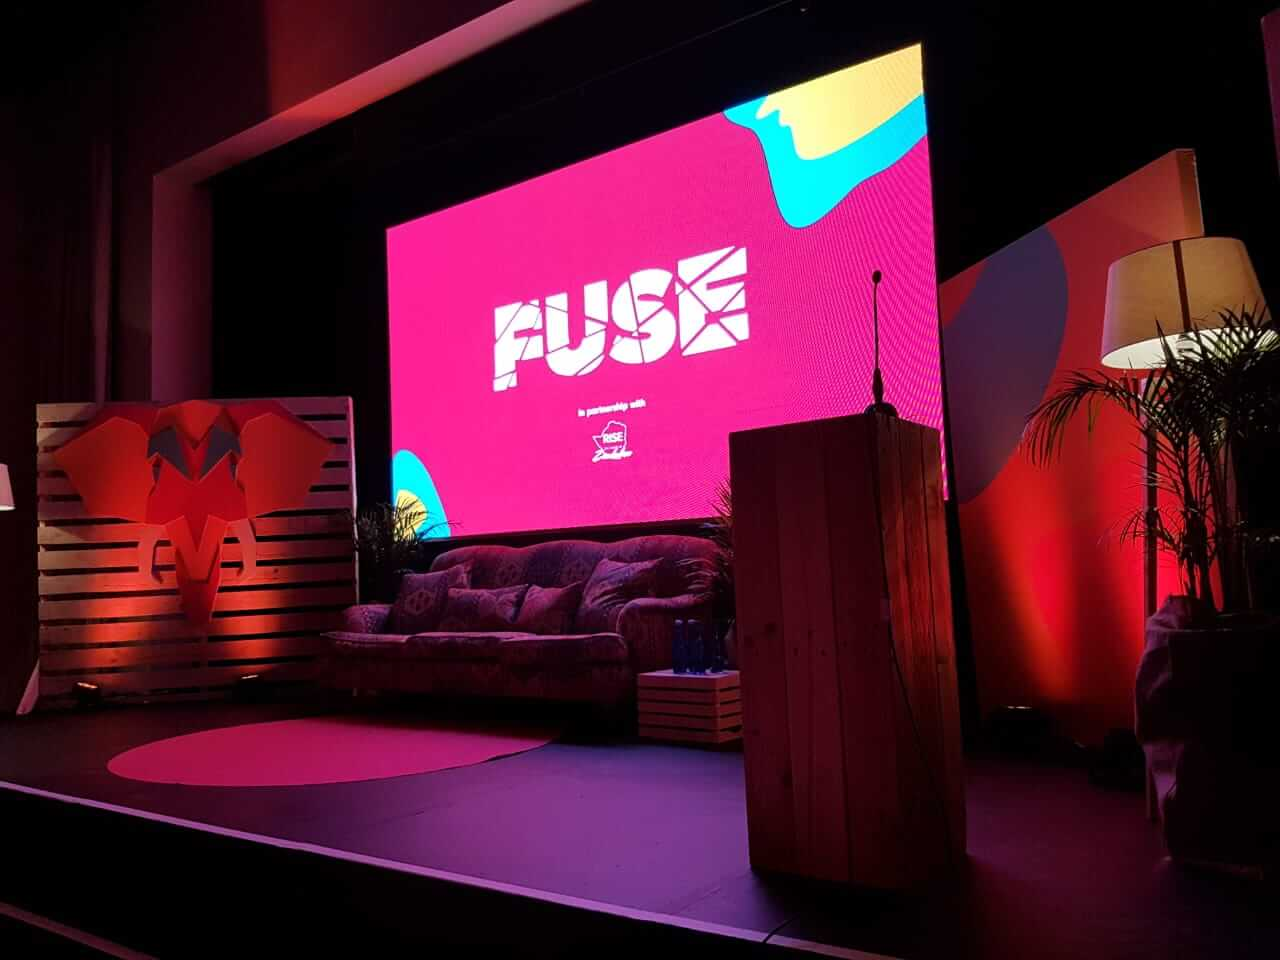 fuse we are africa led screen video wall